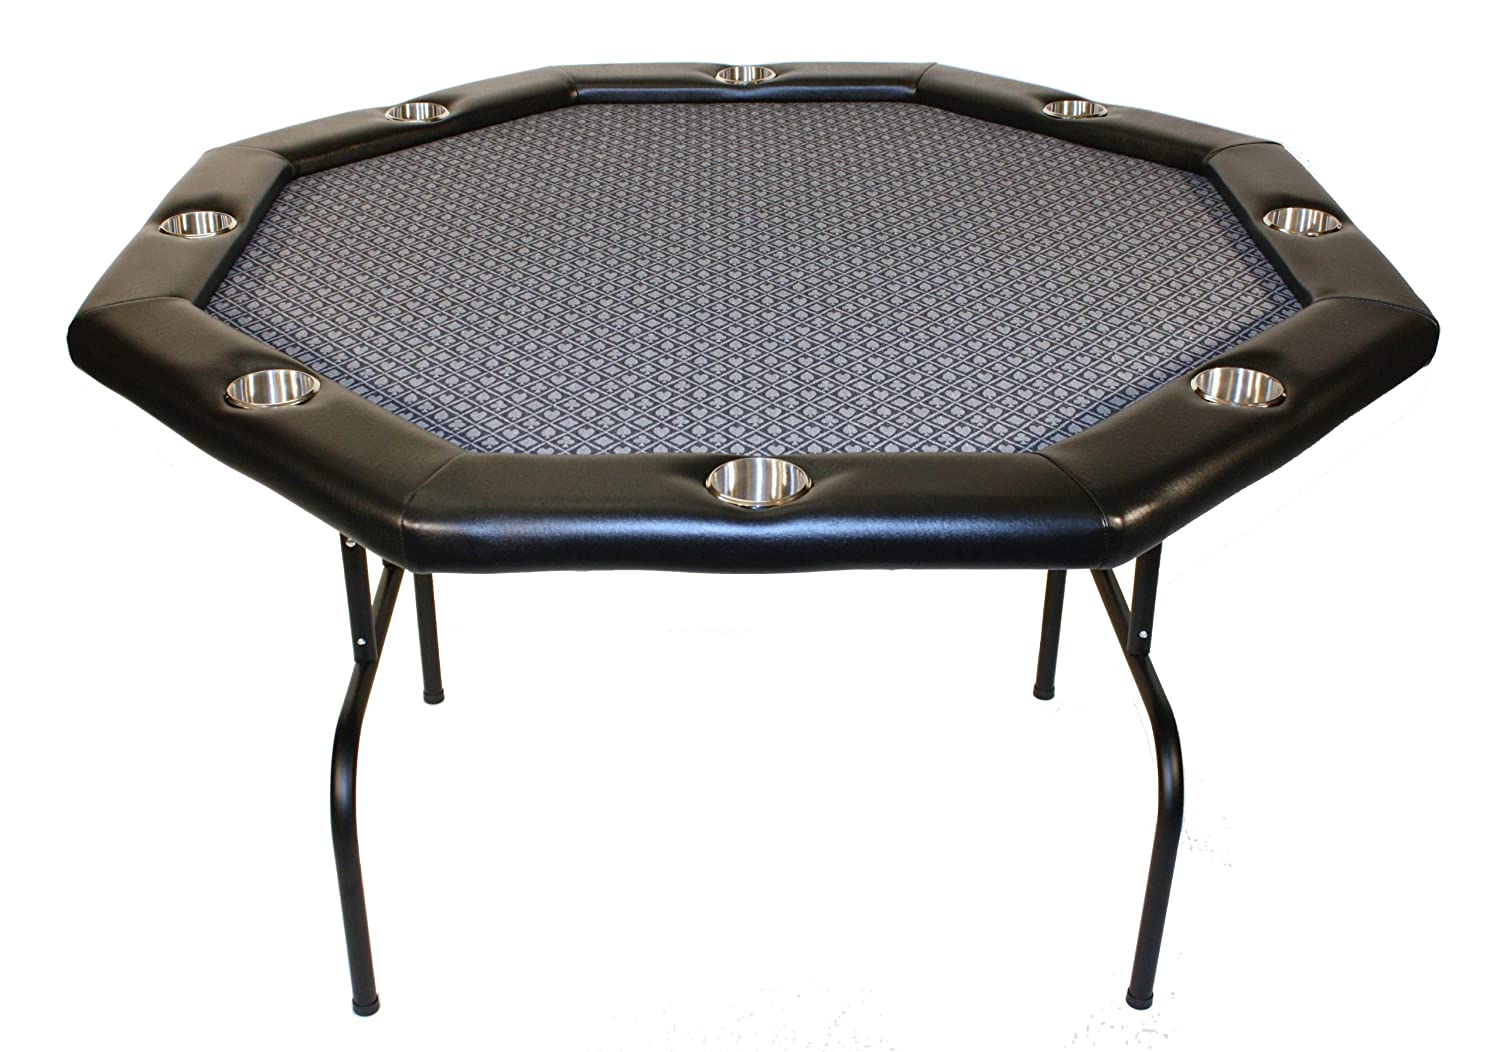 Poker table chairs - Amazon Com Texas Holdem Poker Table W Stainless Cup Holders Suited Speed Cloth With Folding Table Legs 48 X48 X30 High Platinum Sports Outdoors